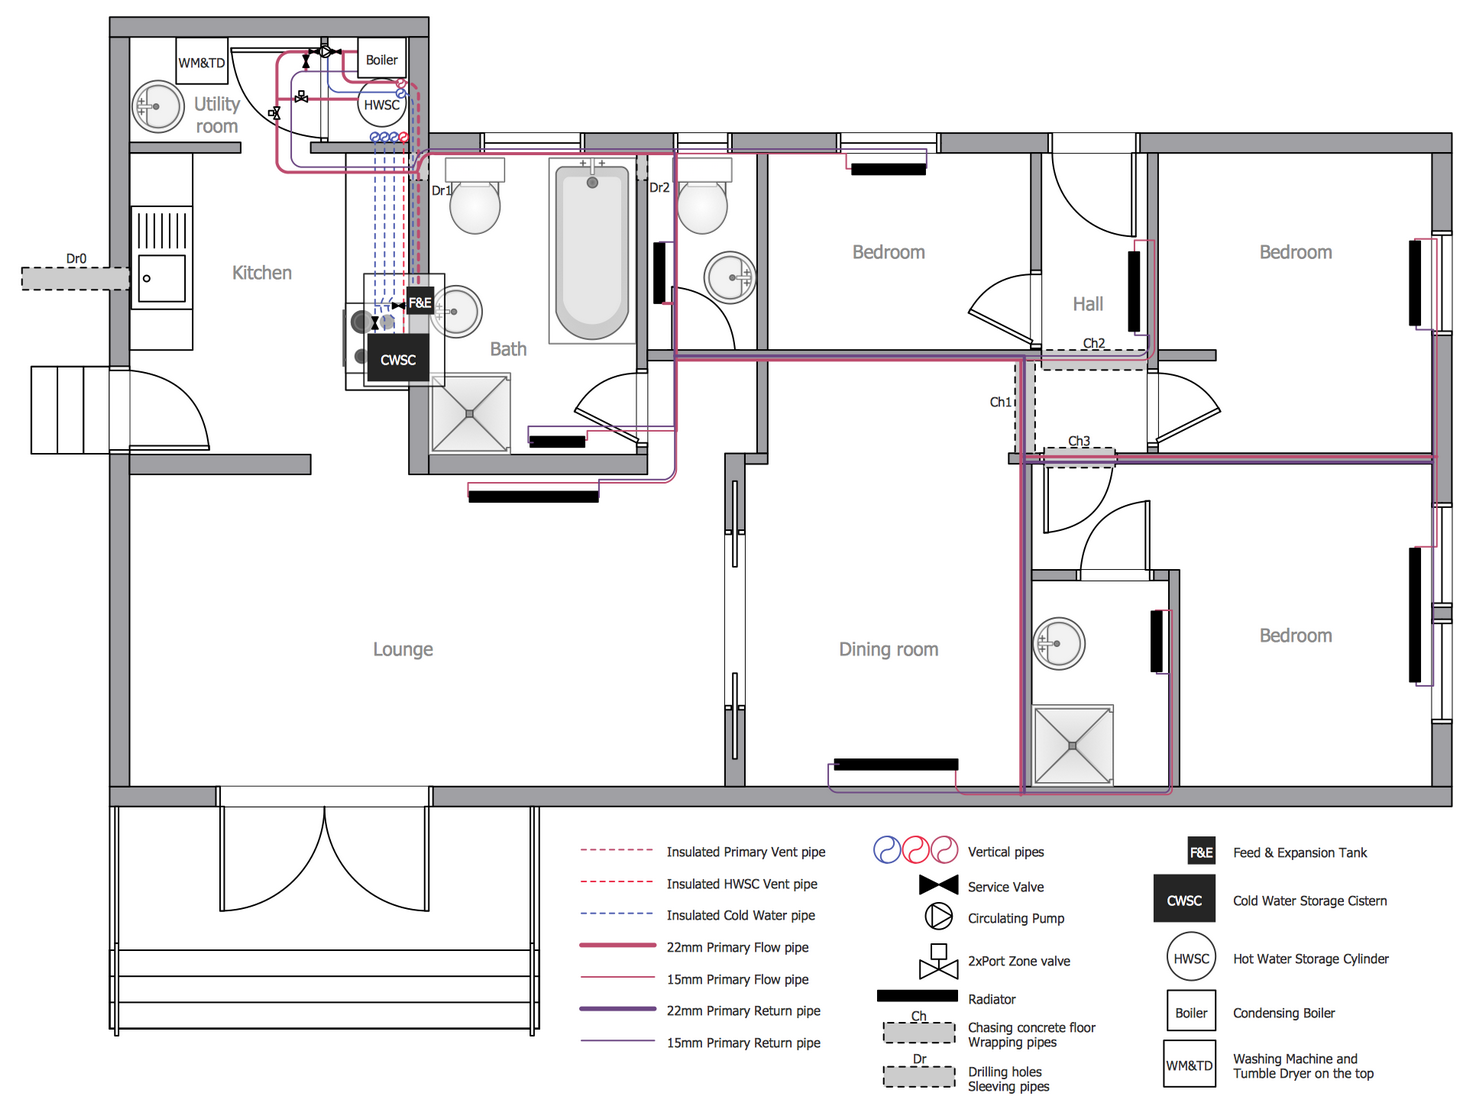 House design and layout - Restaurant Water Supply House Water Heating